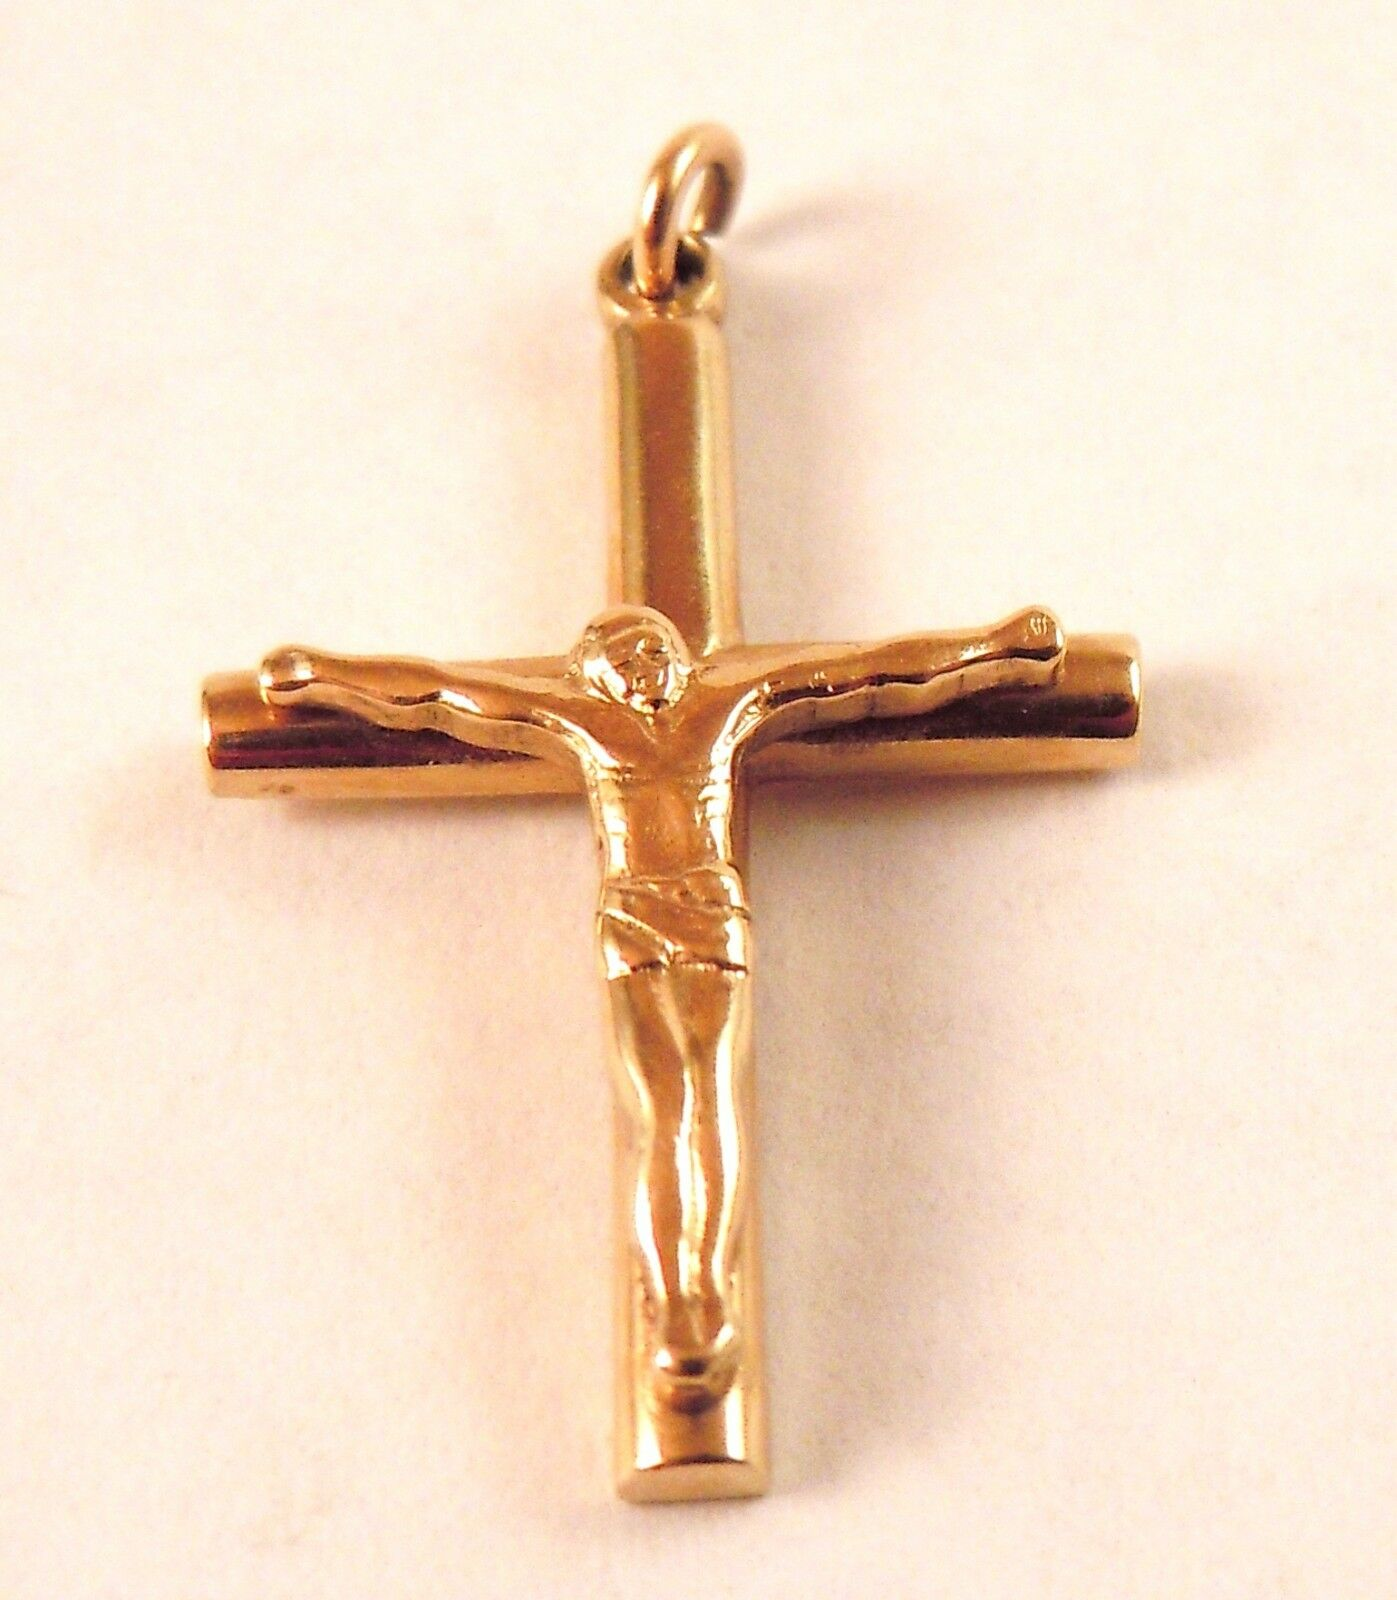 100% Genuine Vintage 9k Solid Yellow gold Crucifix Cross Pendant or Charm